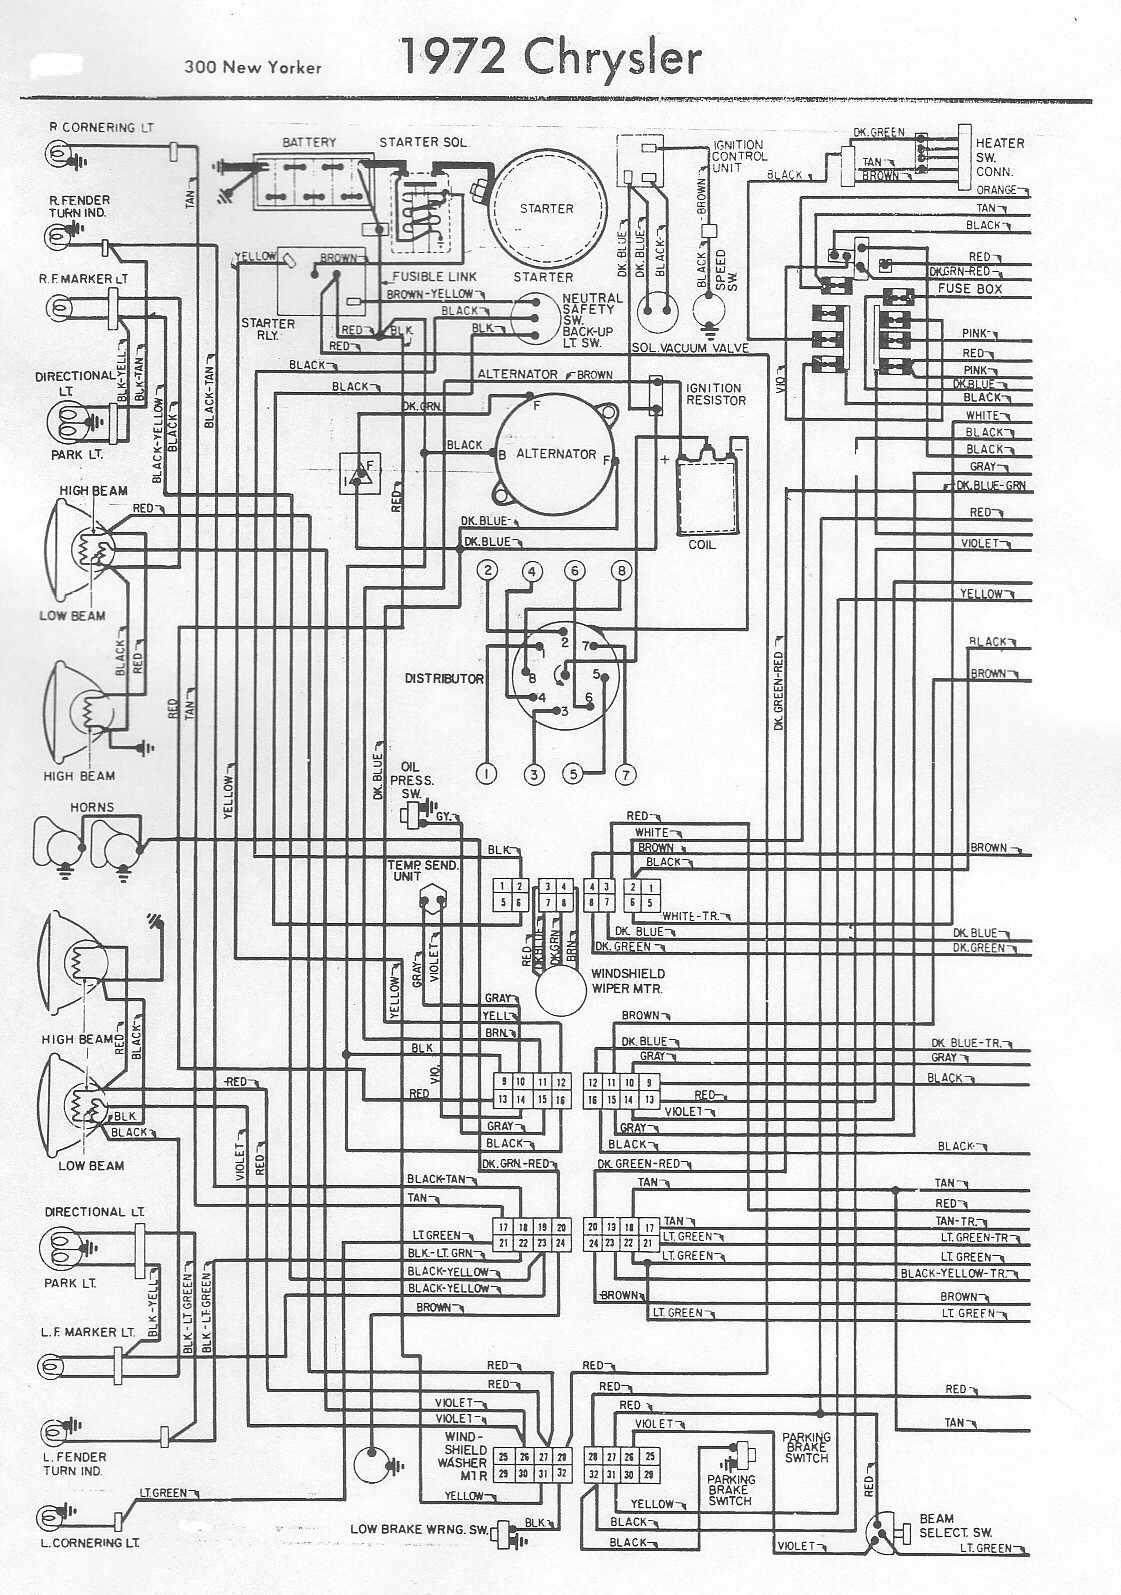 Honda Ca160 Wiring Diagram Electrical Diagrams Ca95 1972 Cl175 St90 Ca77 1967